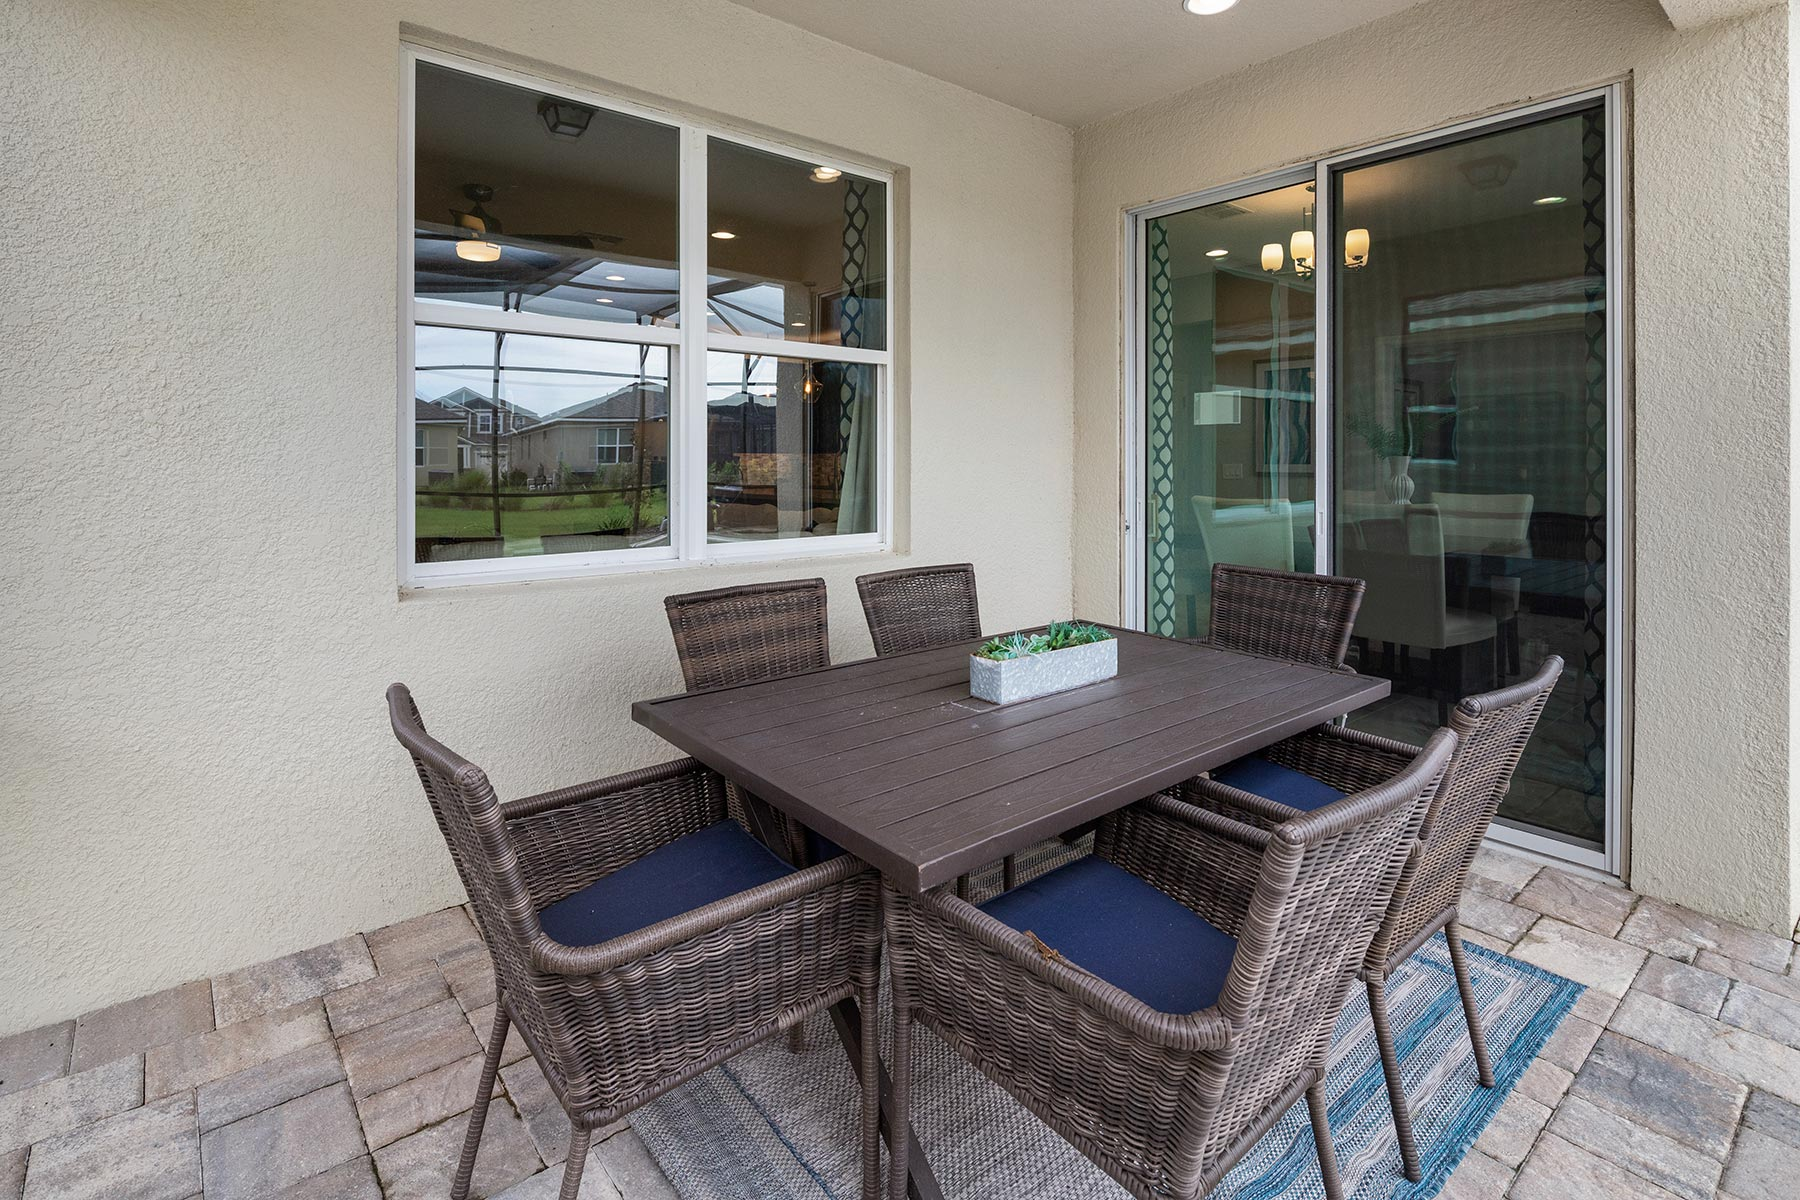 Canon Plan Patio at Tohoqua in Kissimmee Florida by Mattamy Homes